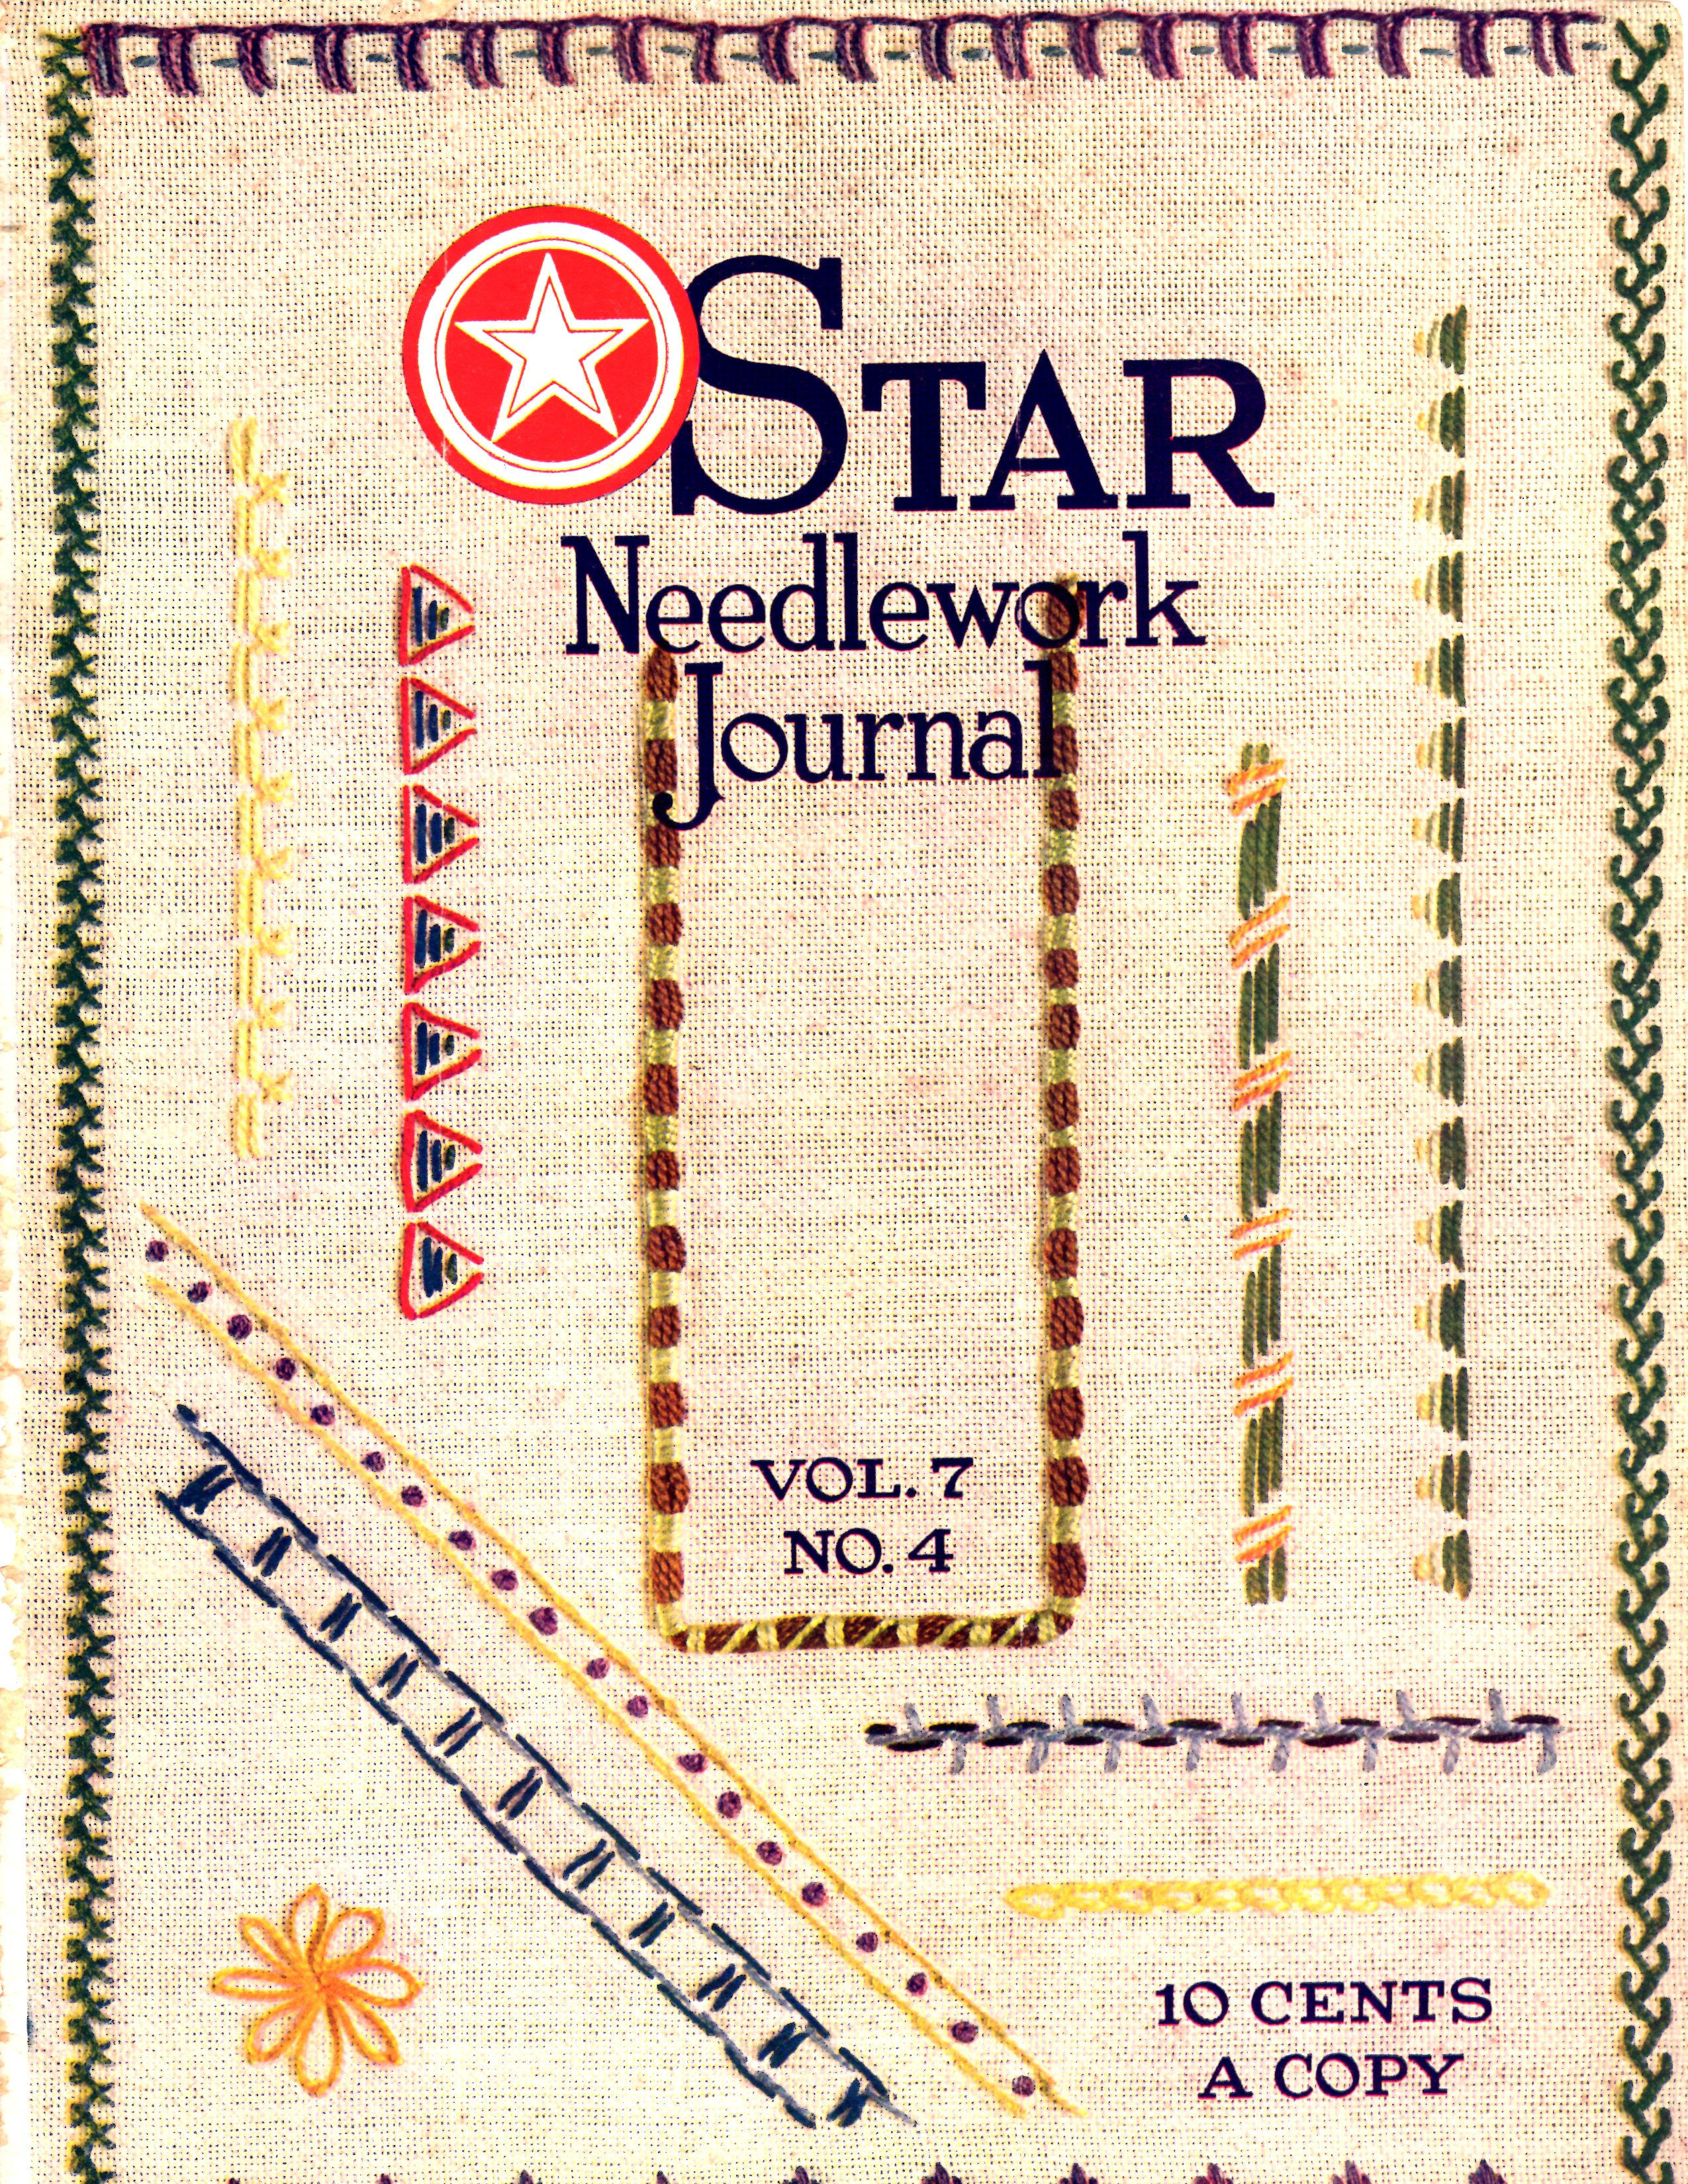 American thread company archives vintage crafts and more cross stitch patterns star needlework journal cover geenschuldenfo Gallery